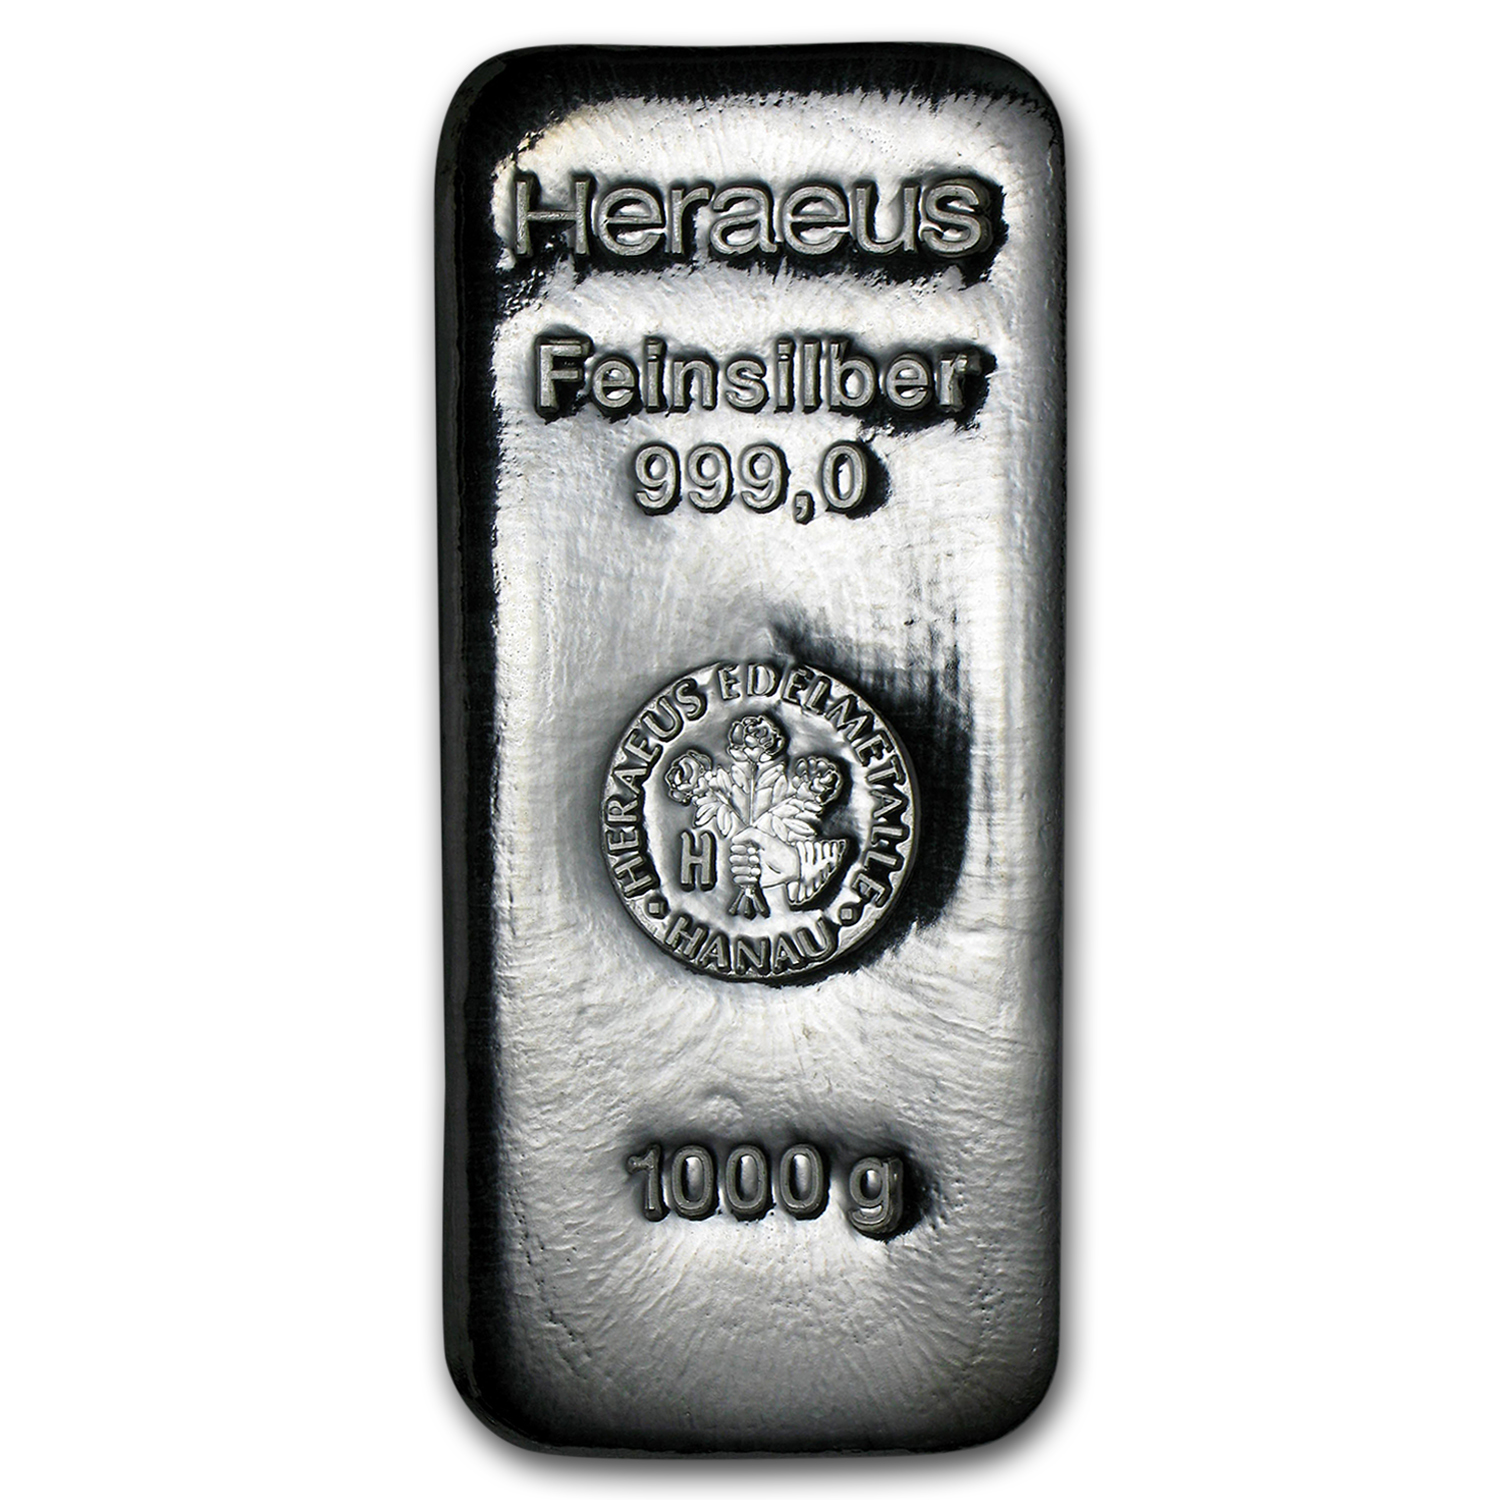 1 kilo Silver Bar - Heraeus (Poured)